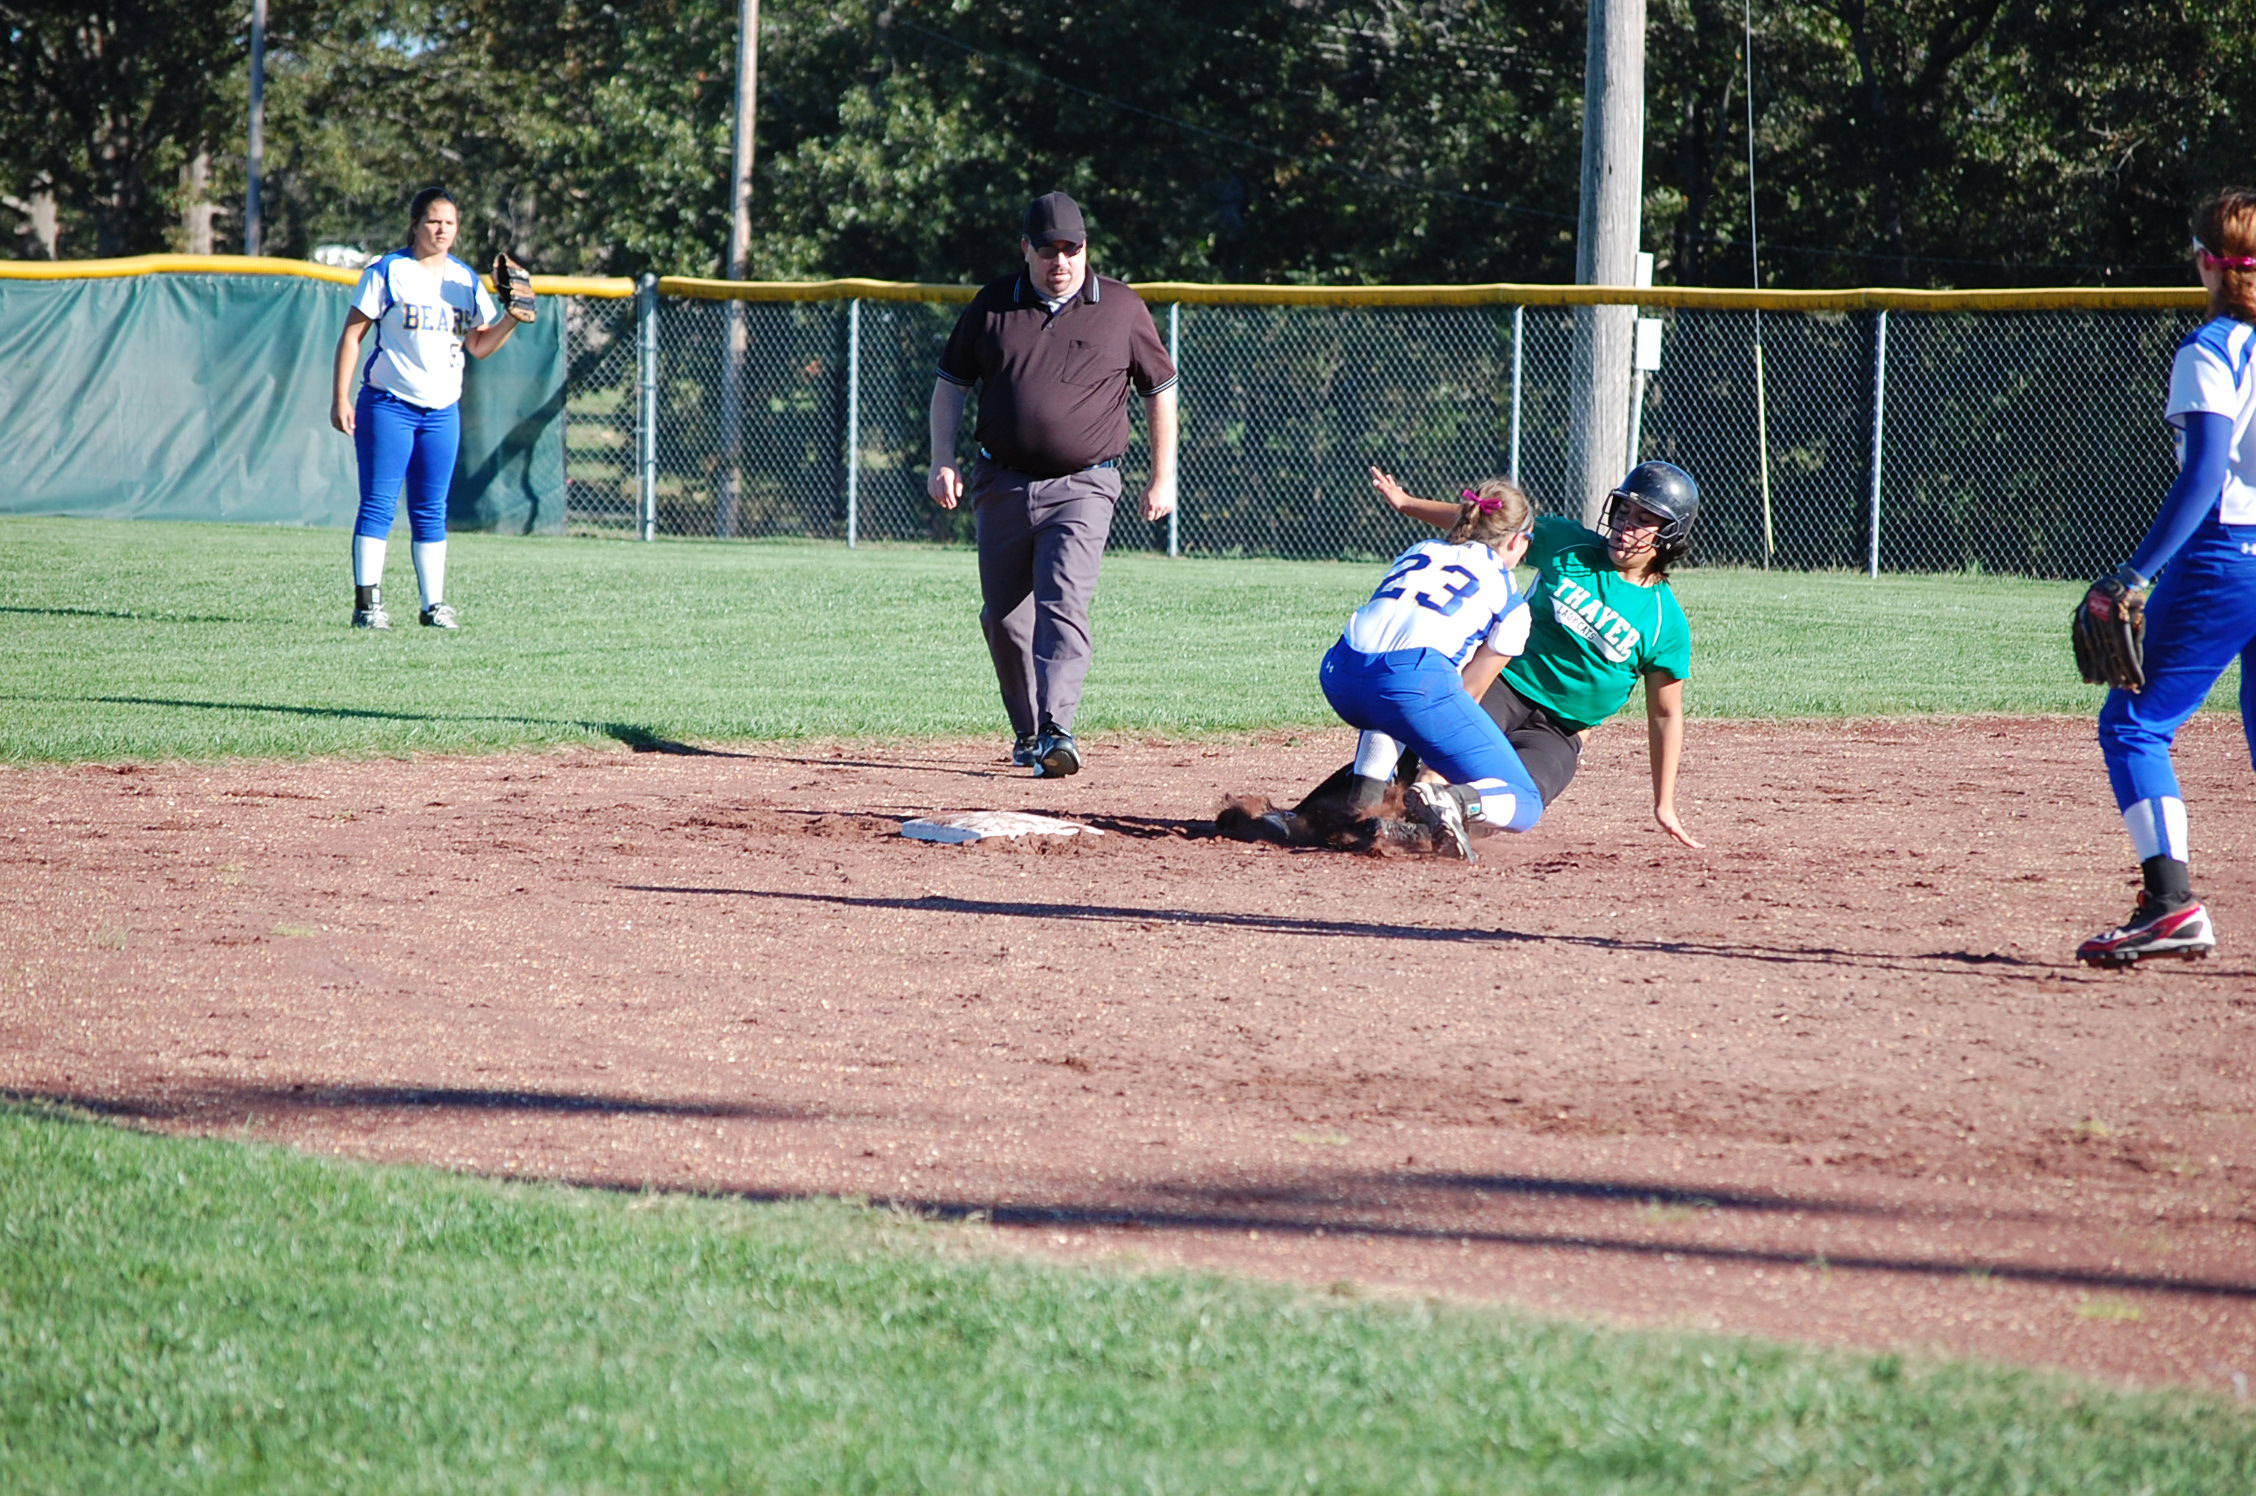 Ava second baseman Bailey Lee puts the tag on a Thayer player stealing second here Monday.